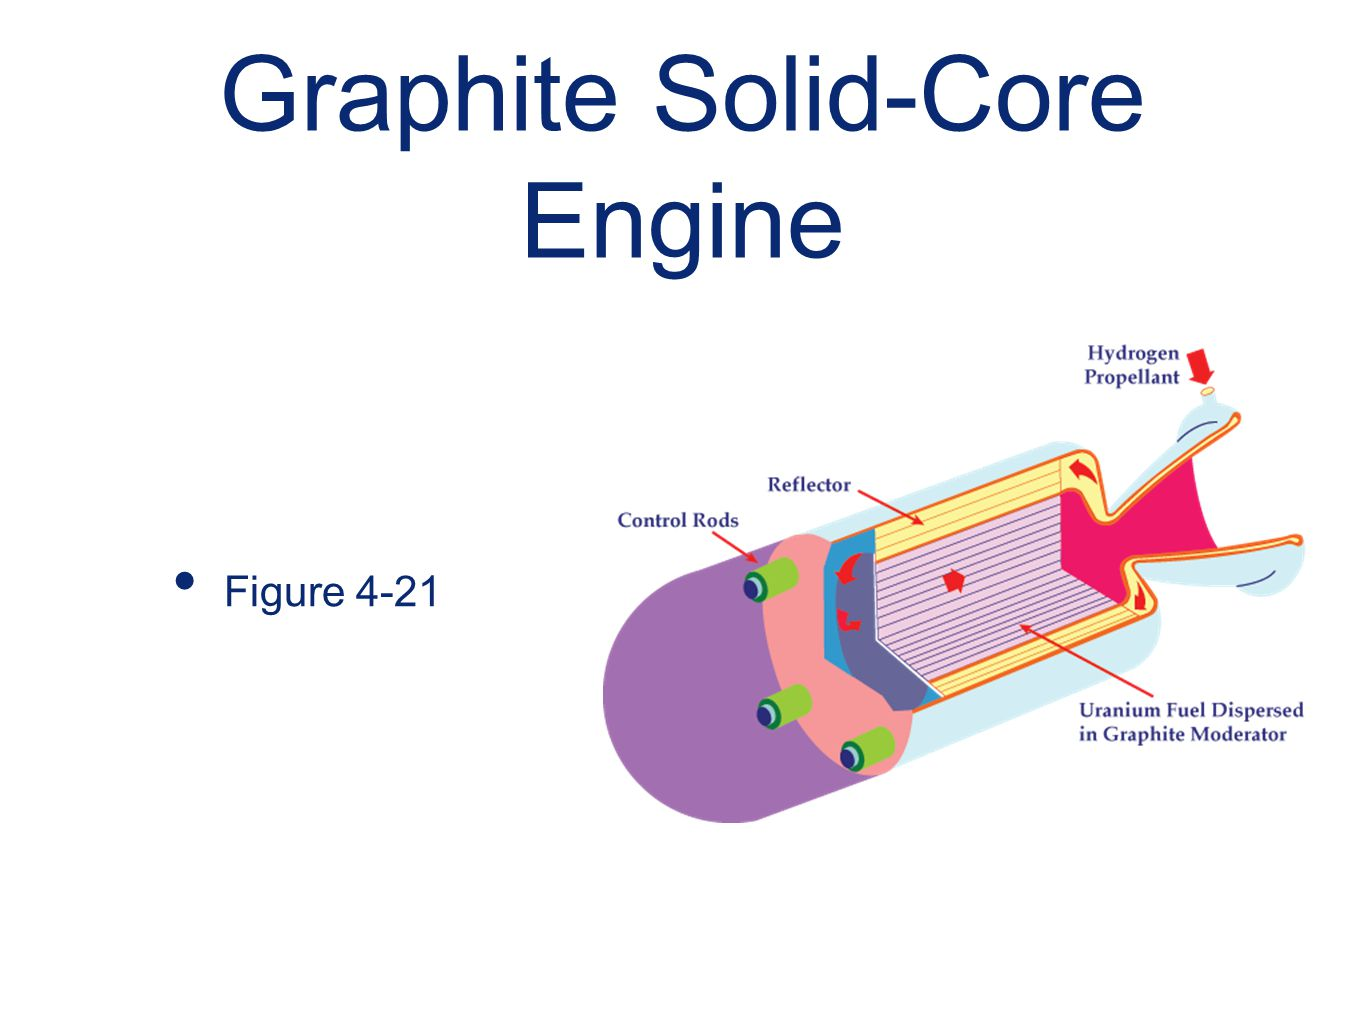 Graphite Solid-Core Engine Figure 4-21